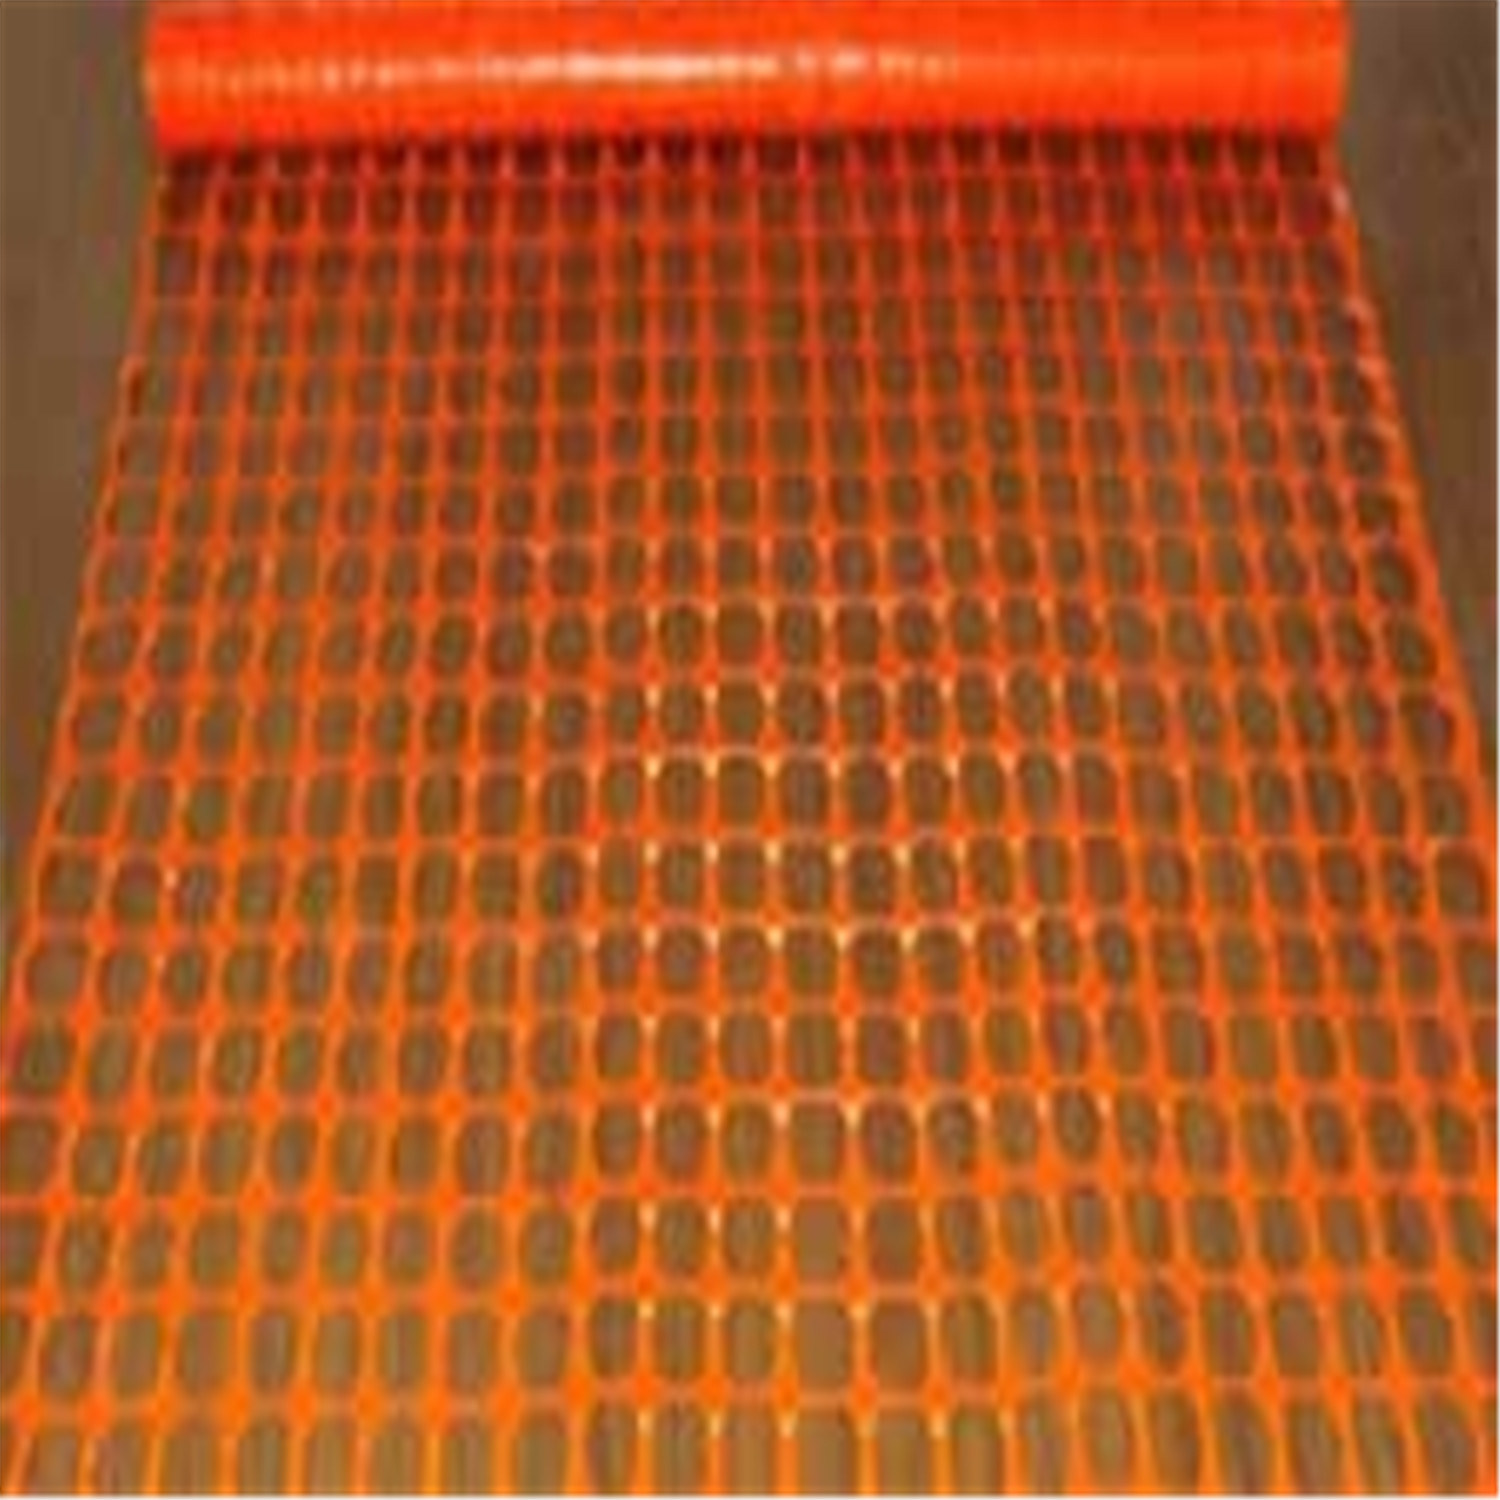 Orange Plastic Warning Safety Fence